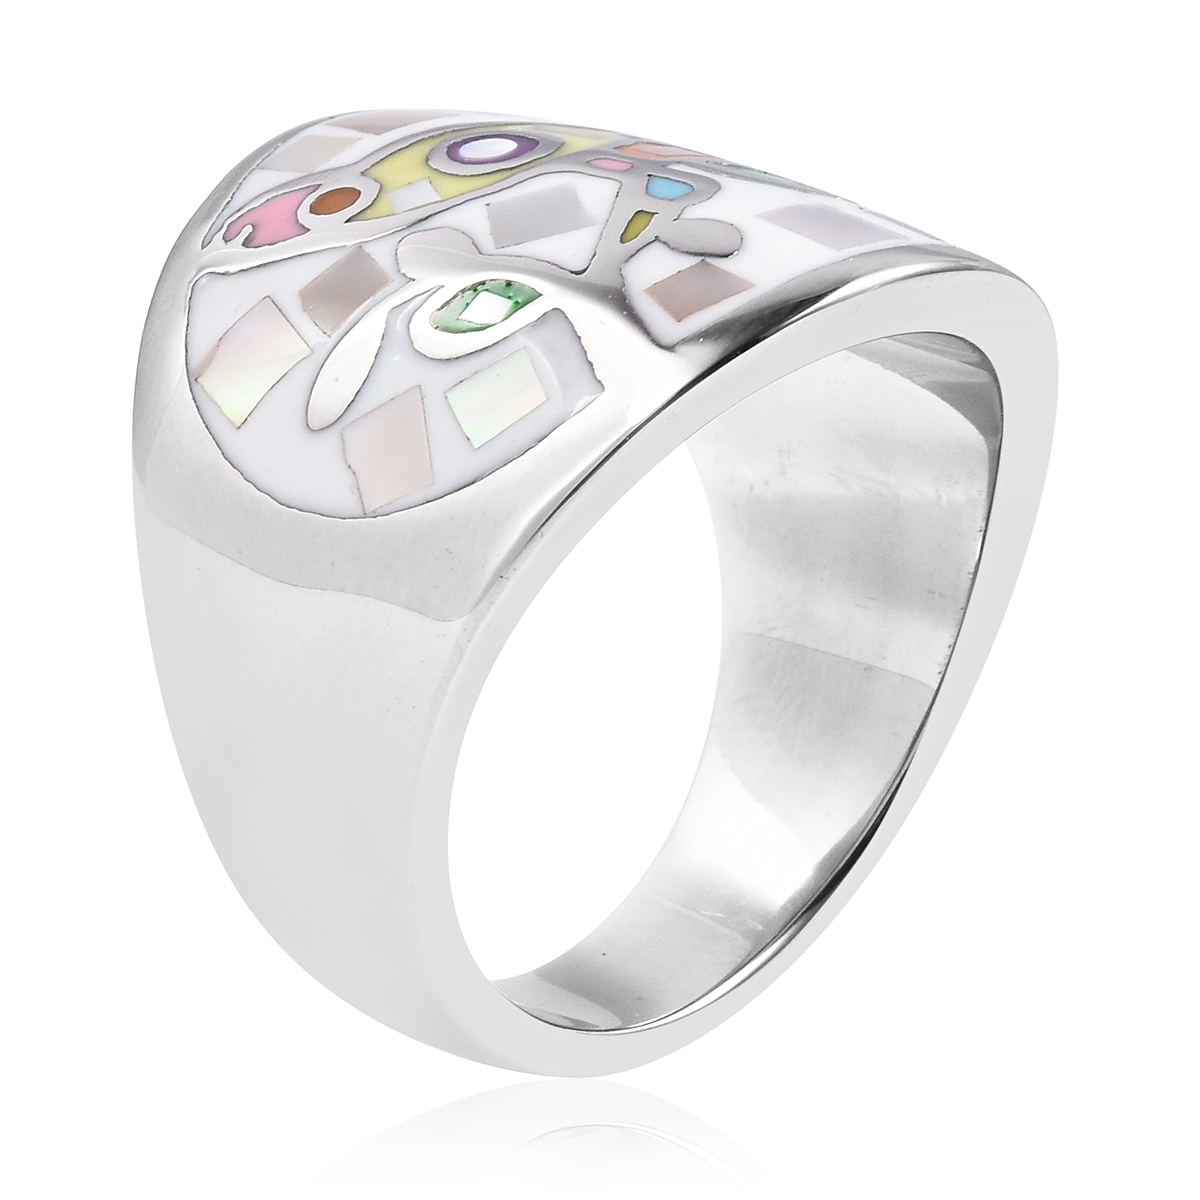 Mother of Pearl, Enameled Ring in Stainless Steel (Size 6.0)